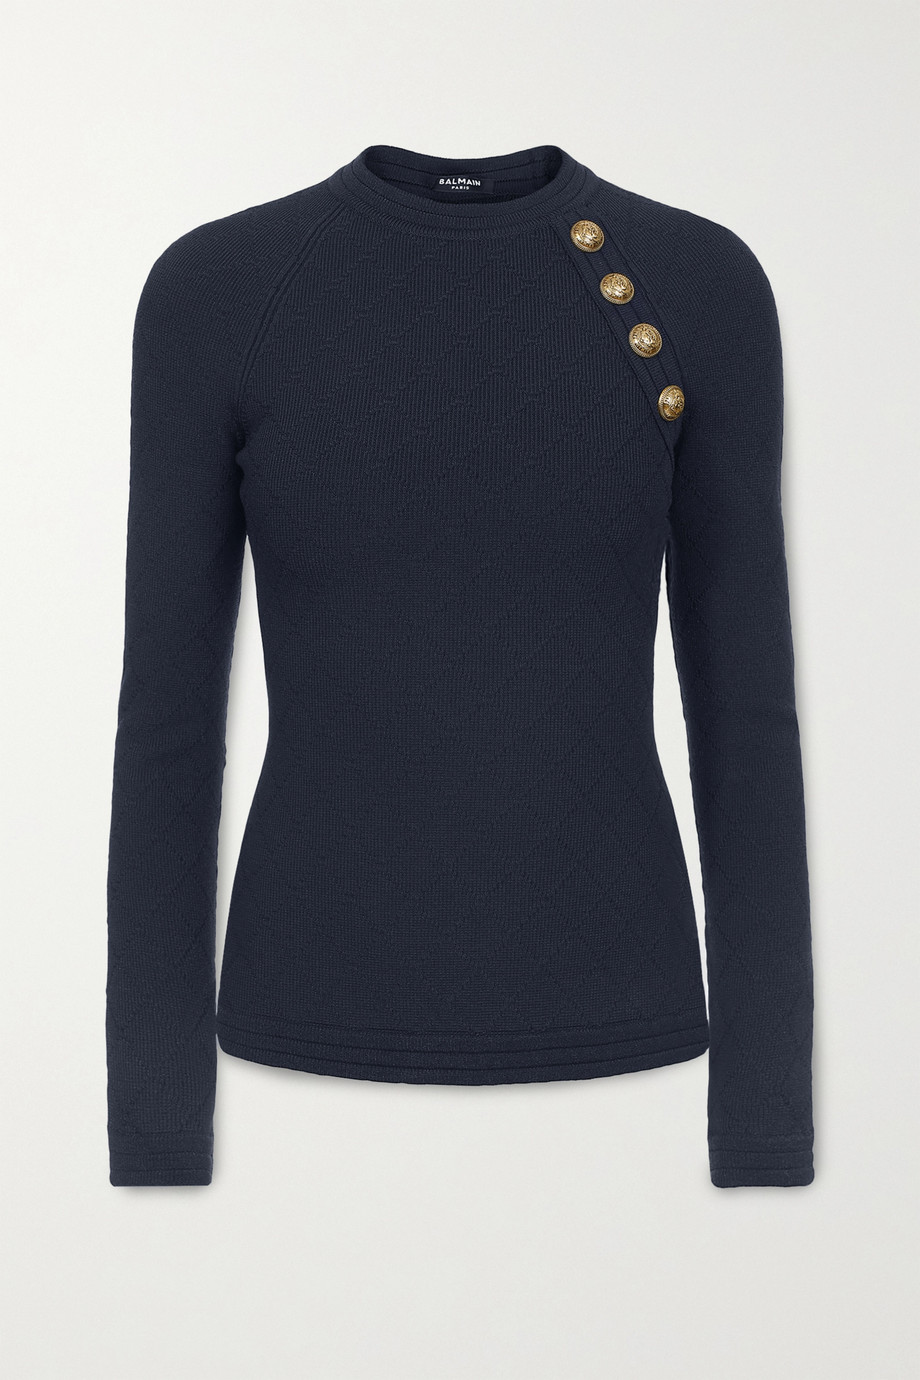 Balmain Button-embellished jacquard-knit sweater